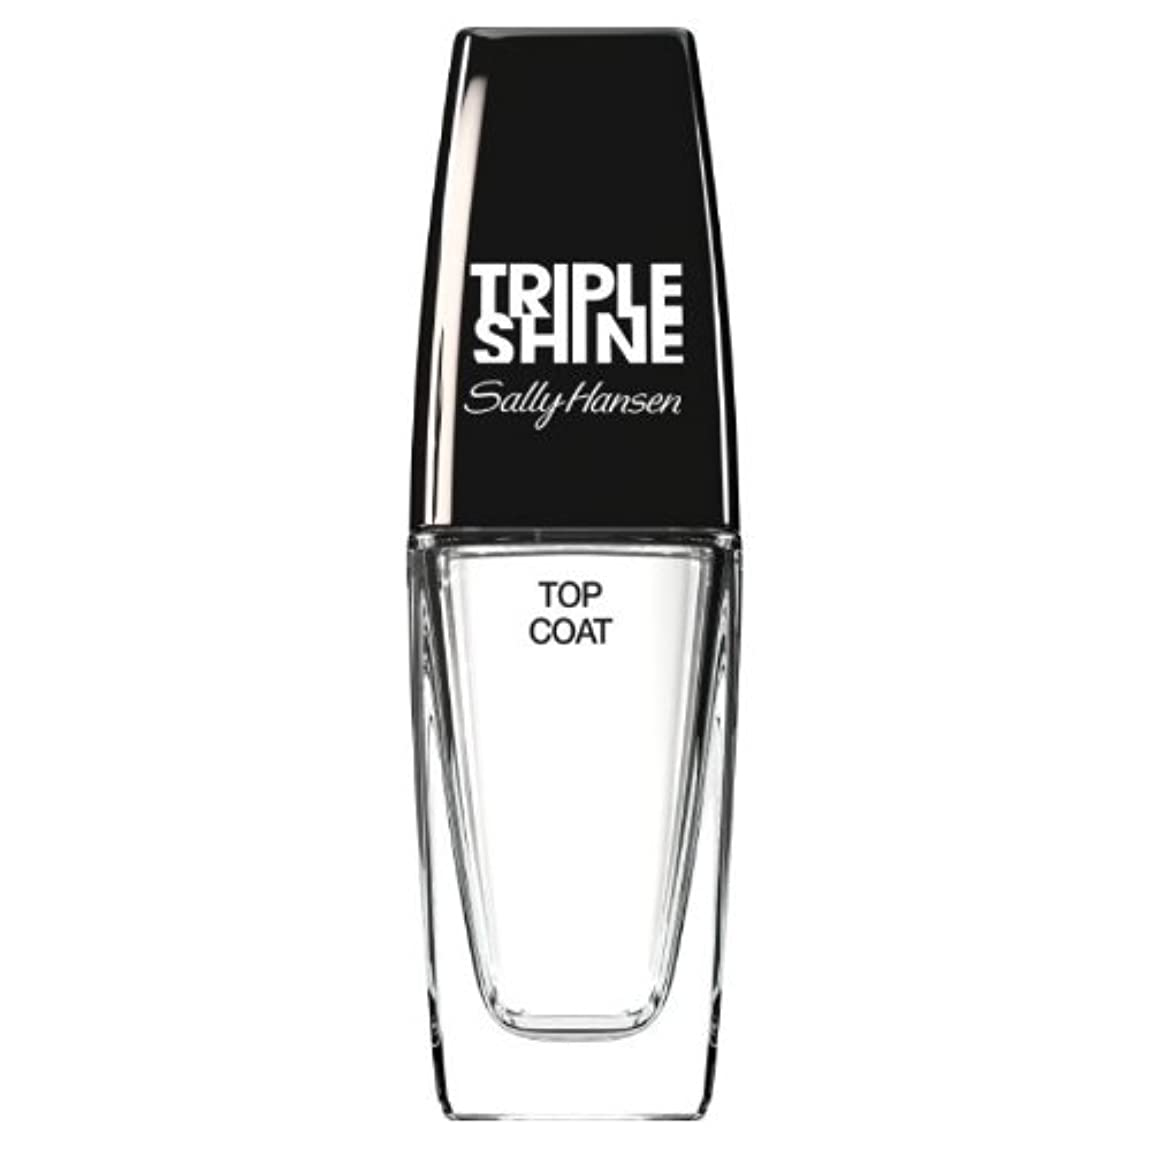 発揮するエンジニア甘やかす(3 Pack) SALLY HANSEN Triple Shine Top Coat - Triple Shine Top Coat (並行輸入品)